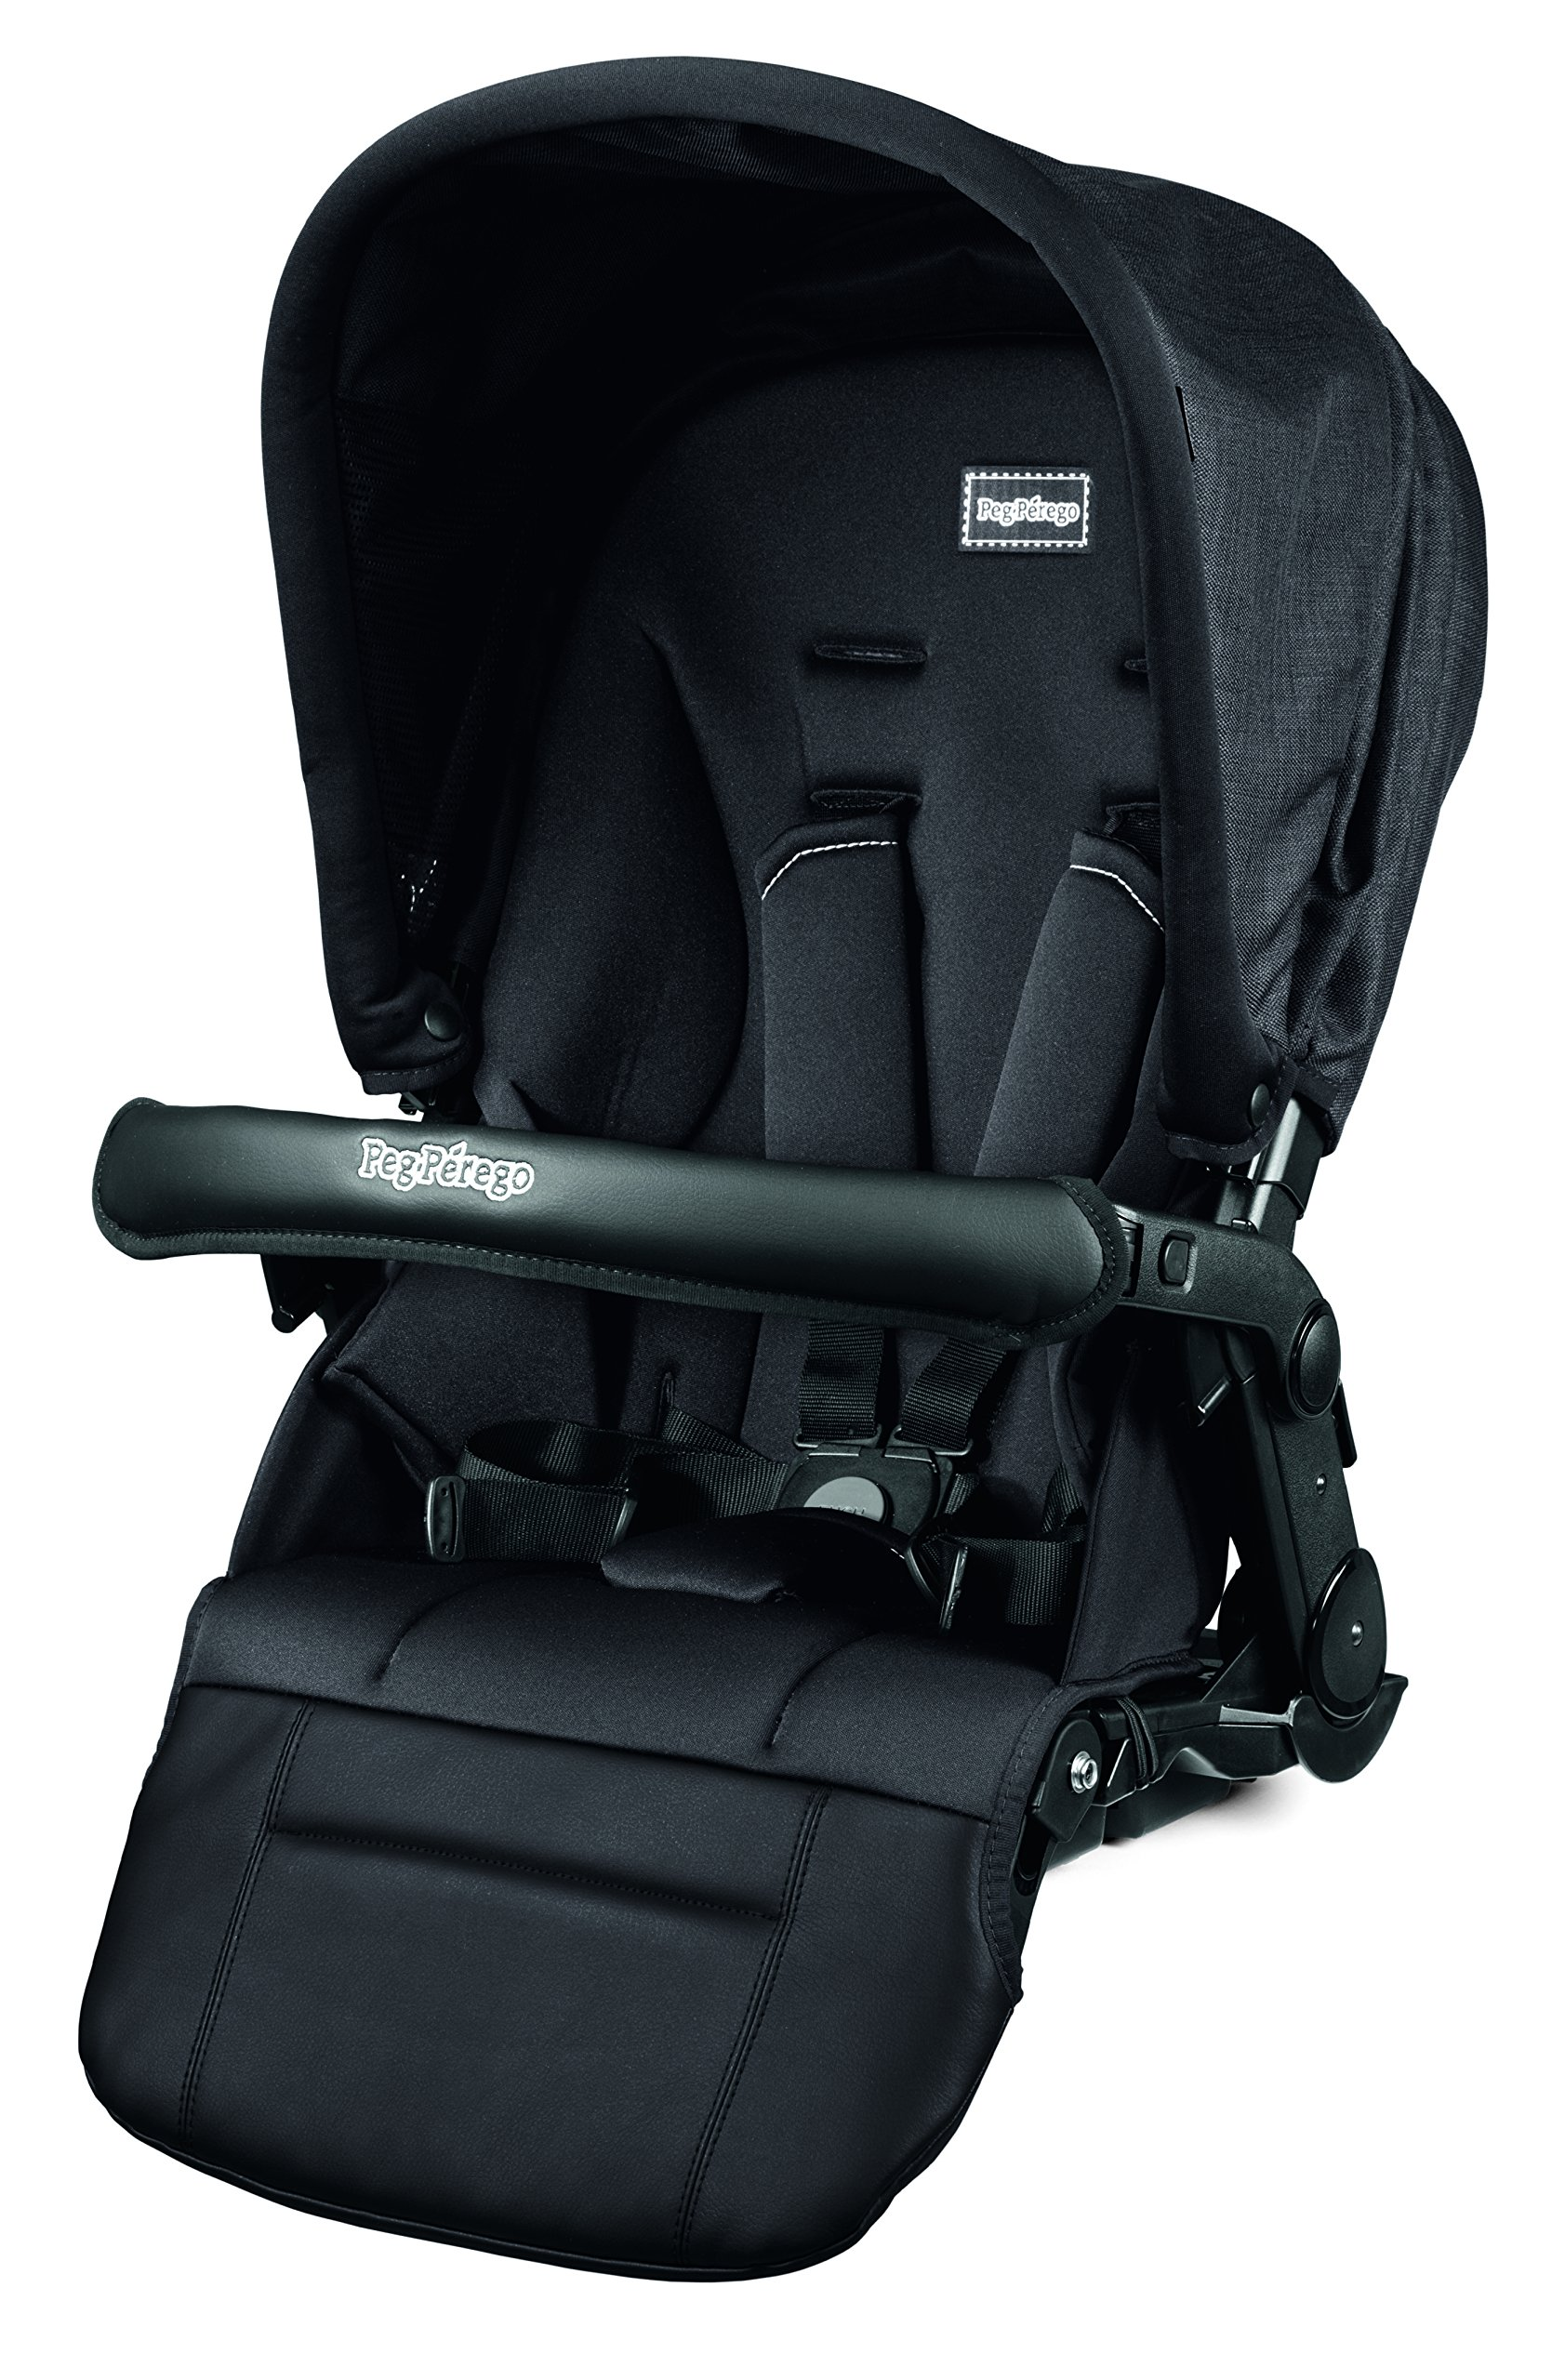 Peg Perego Pop-Up Seat for Team, Duette and Triplette Strollers, Onyx